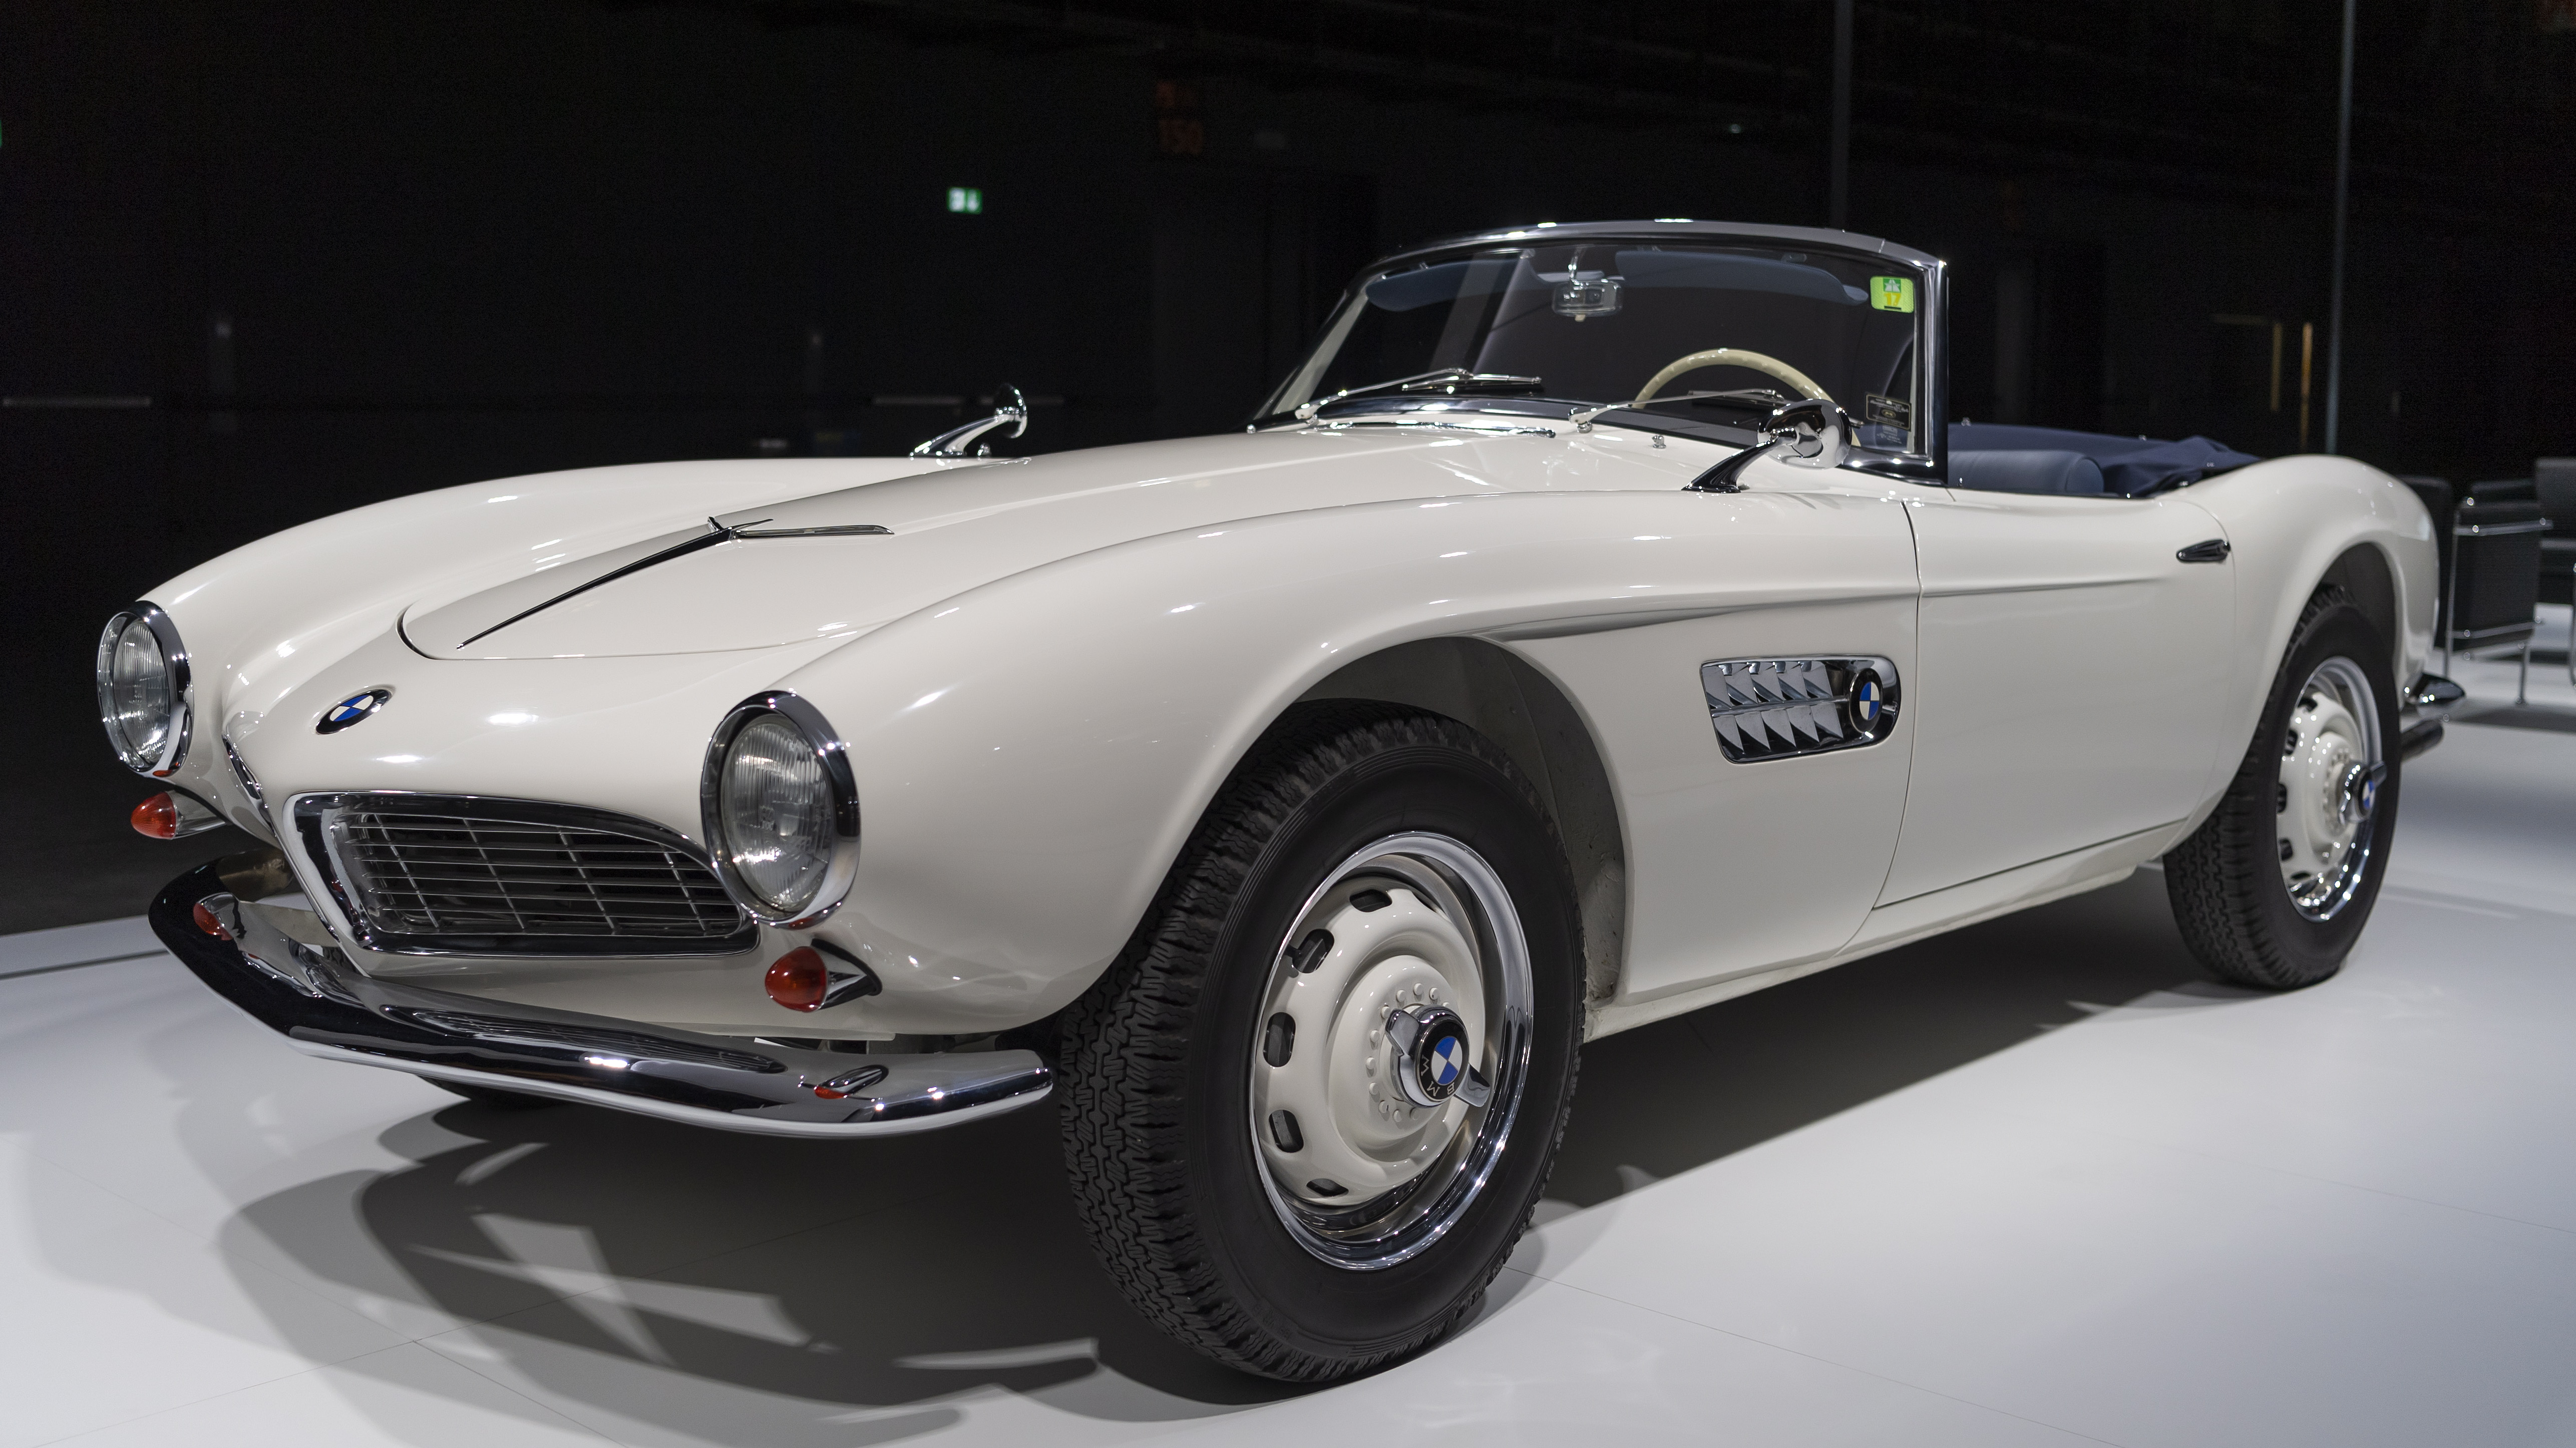 BMW 507 Serie 2 Roadster (1959)